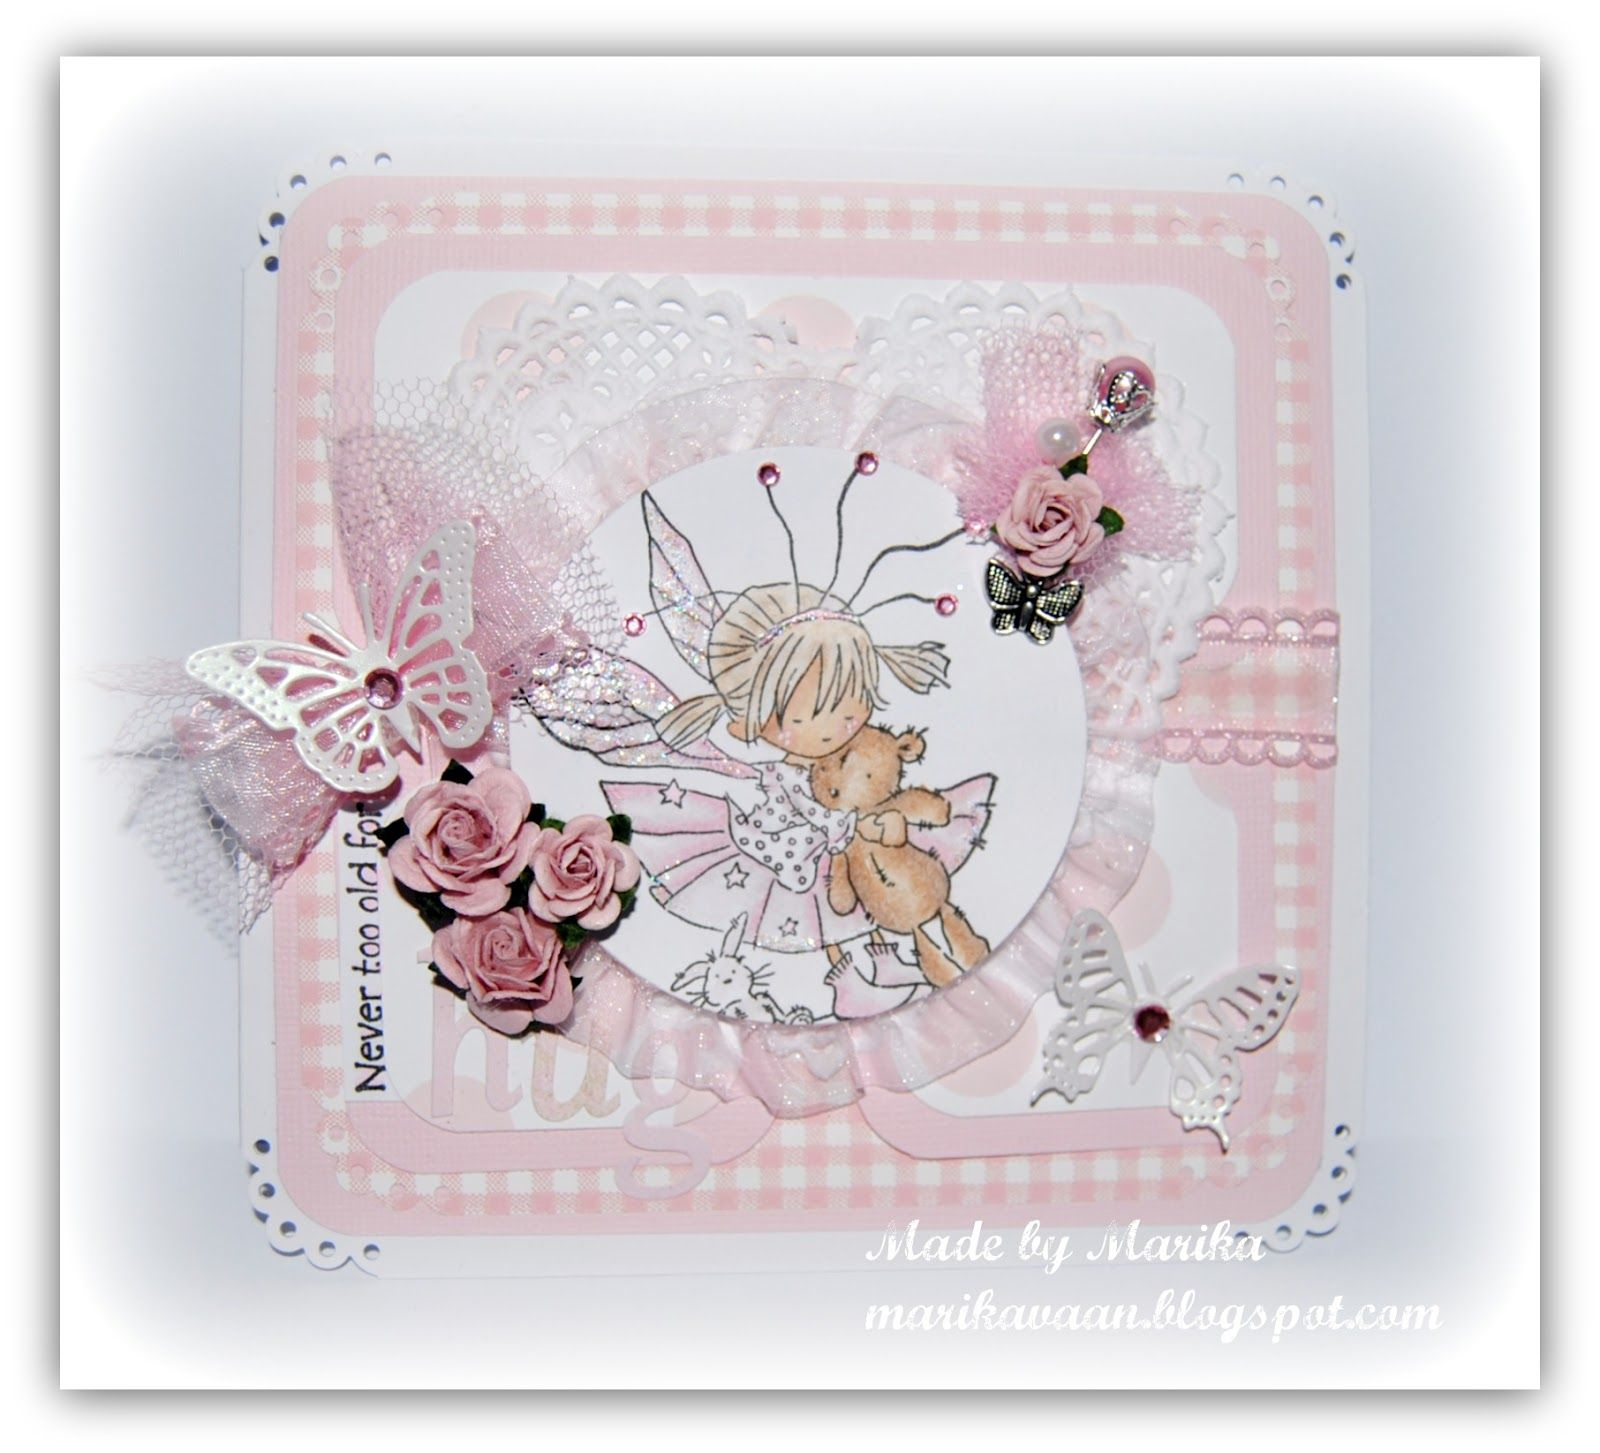 LOTV - Never too old for a hug - http://www.liliofthevalley.co.uk/acatalog/Stamp_-_Never_Too_Old_for_a_Hug.html